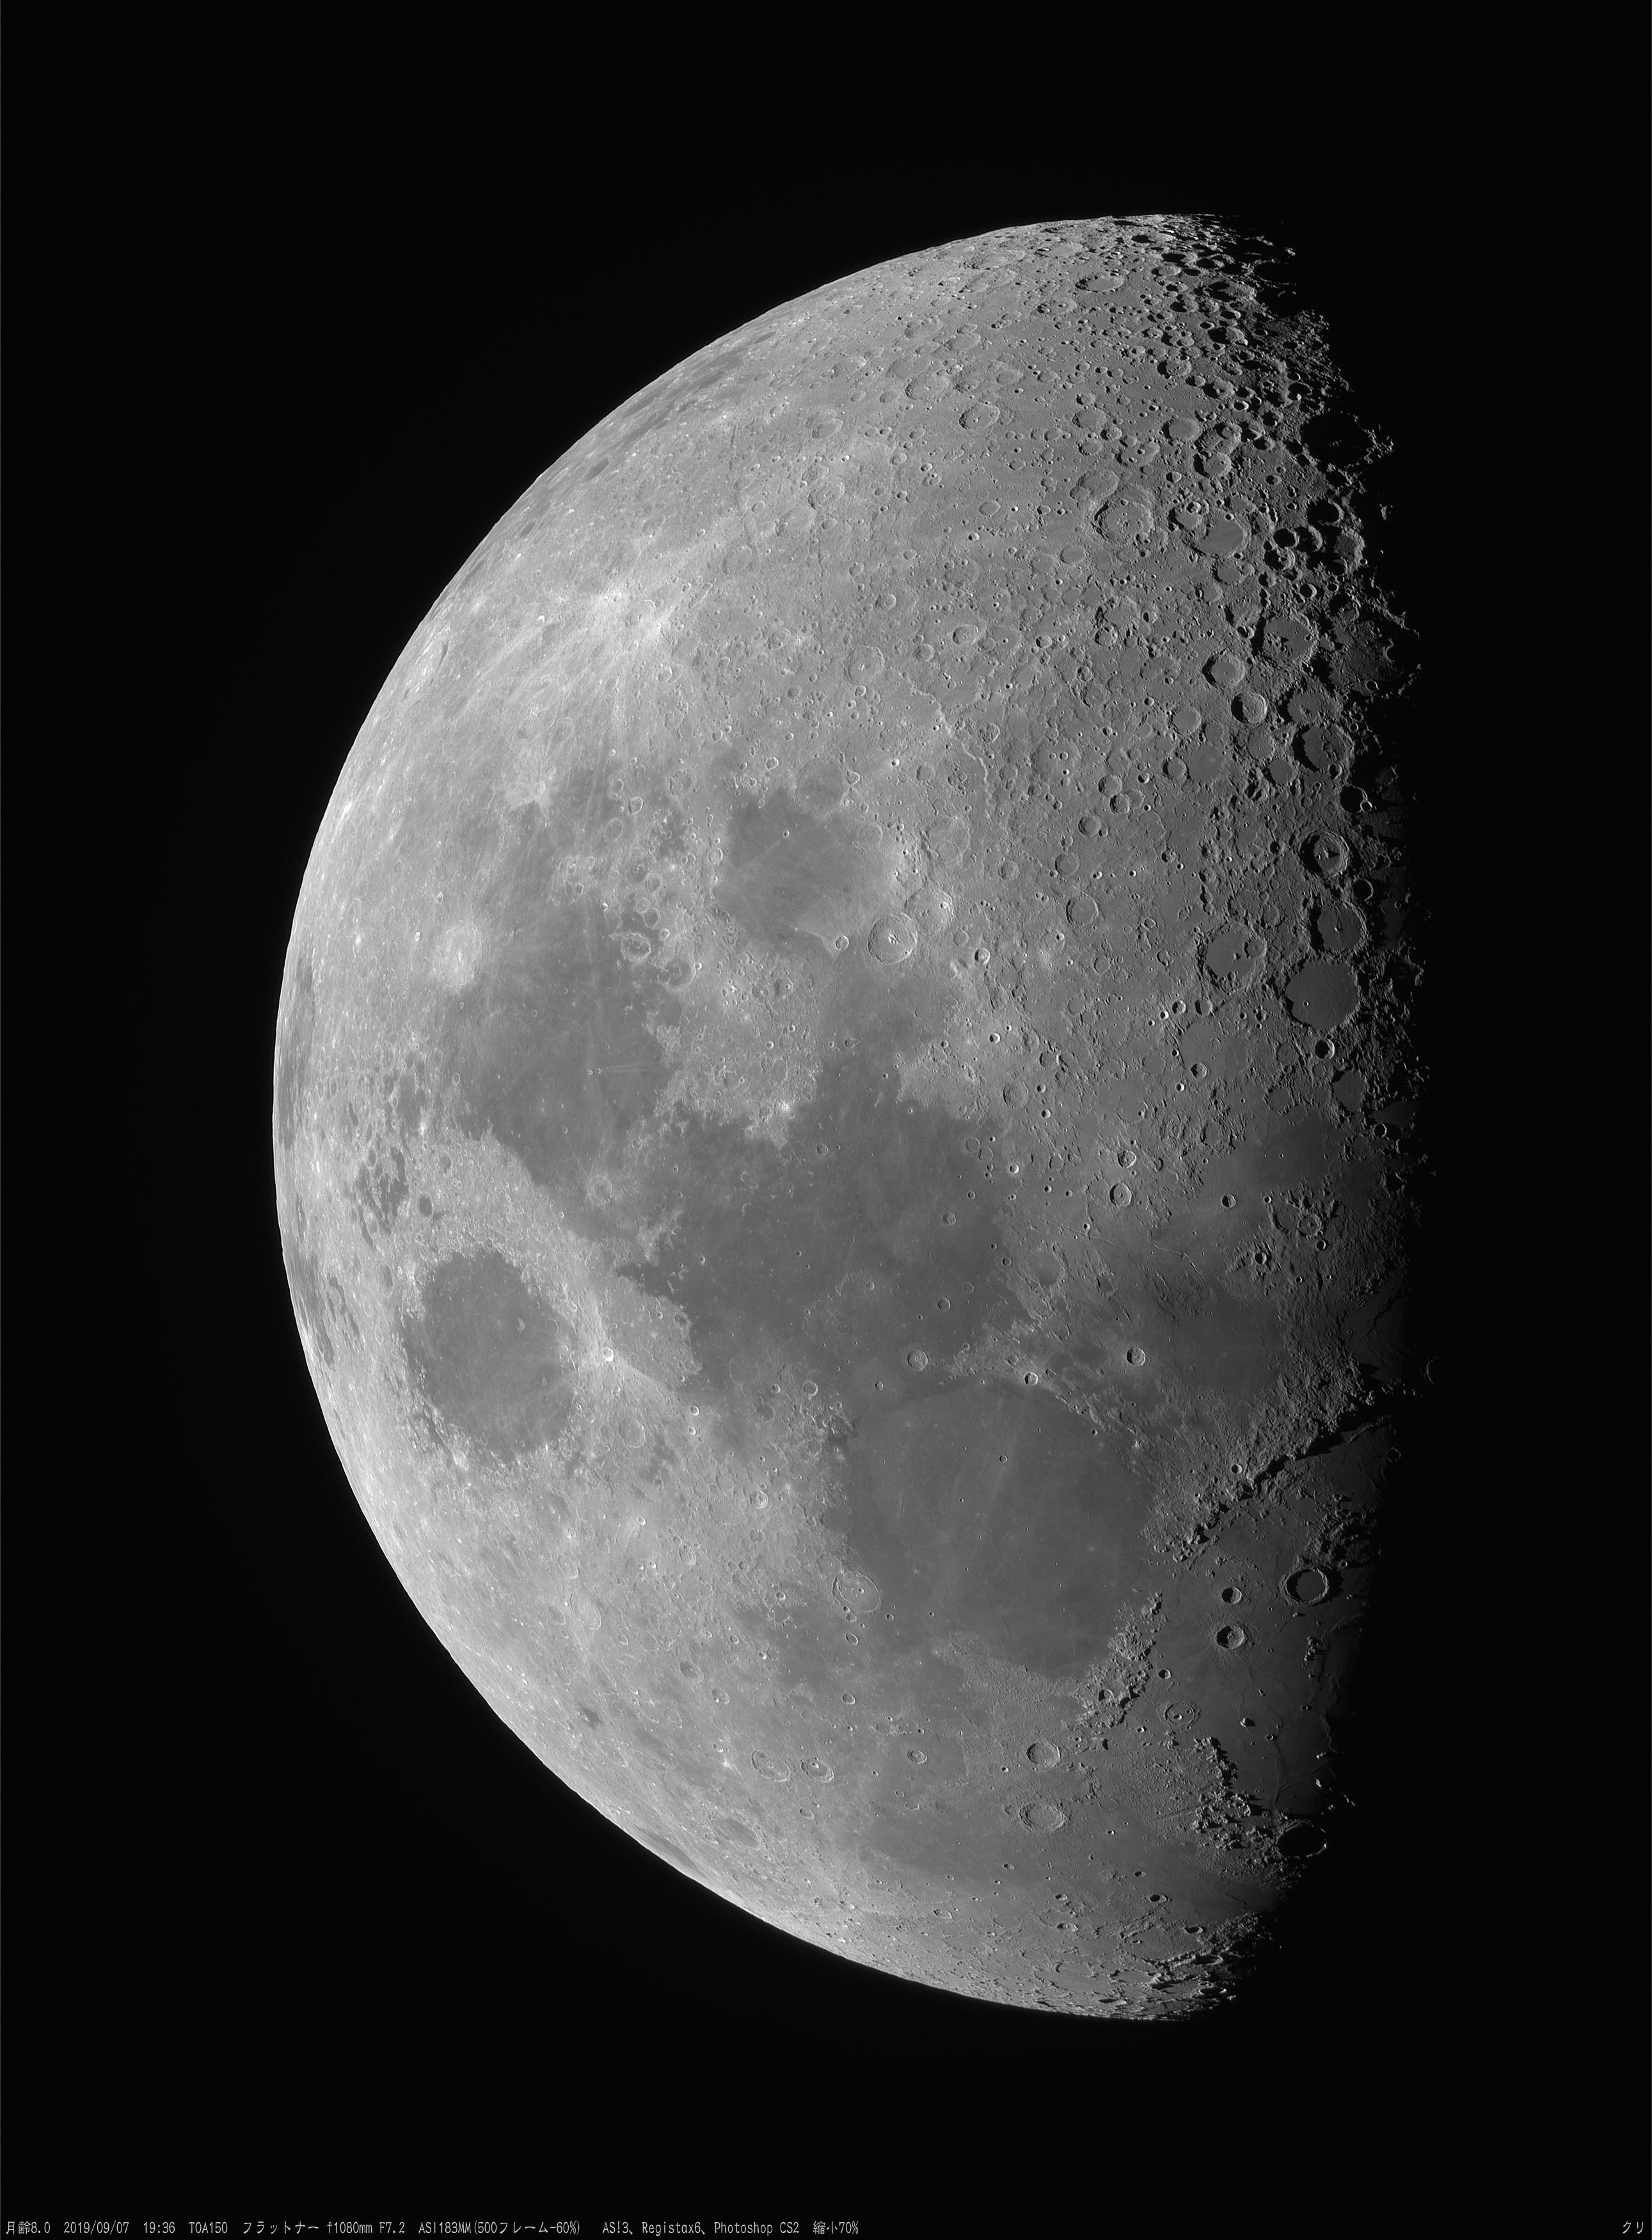 20190907MoonAge8_0(TOA150-1080mm ASI183MM)_193646_500-60%